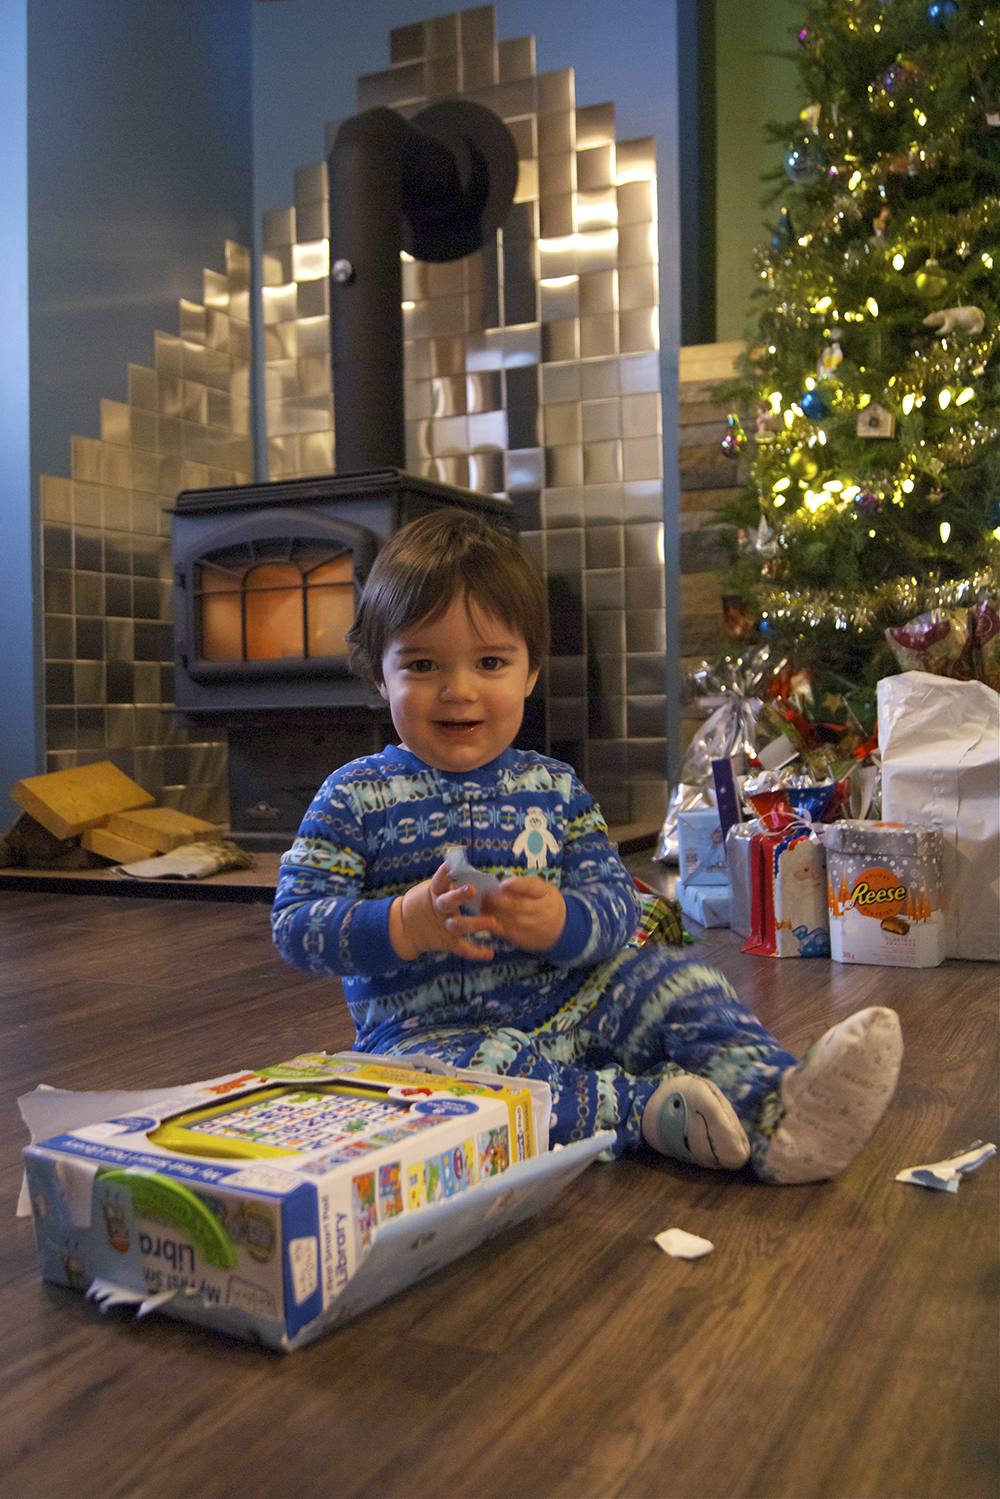 Rowan opening up his gift from mommy and daddy